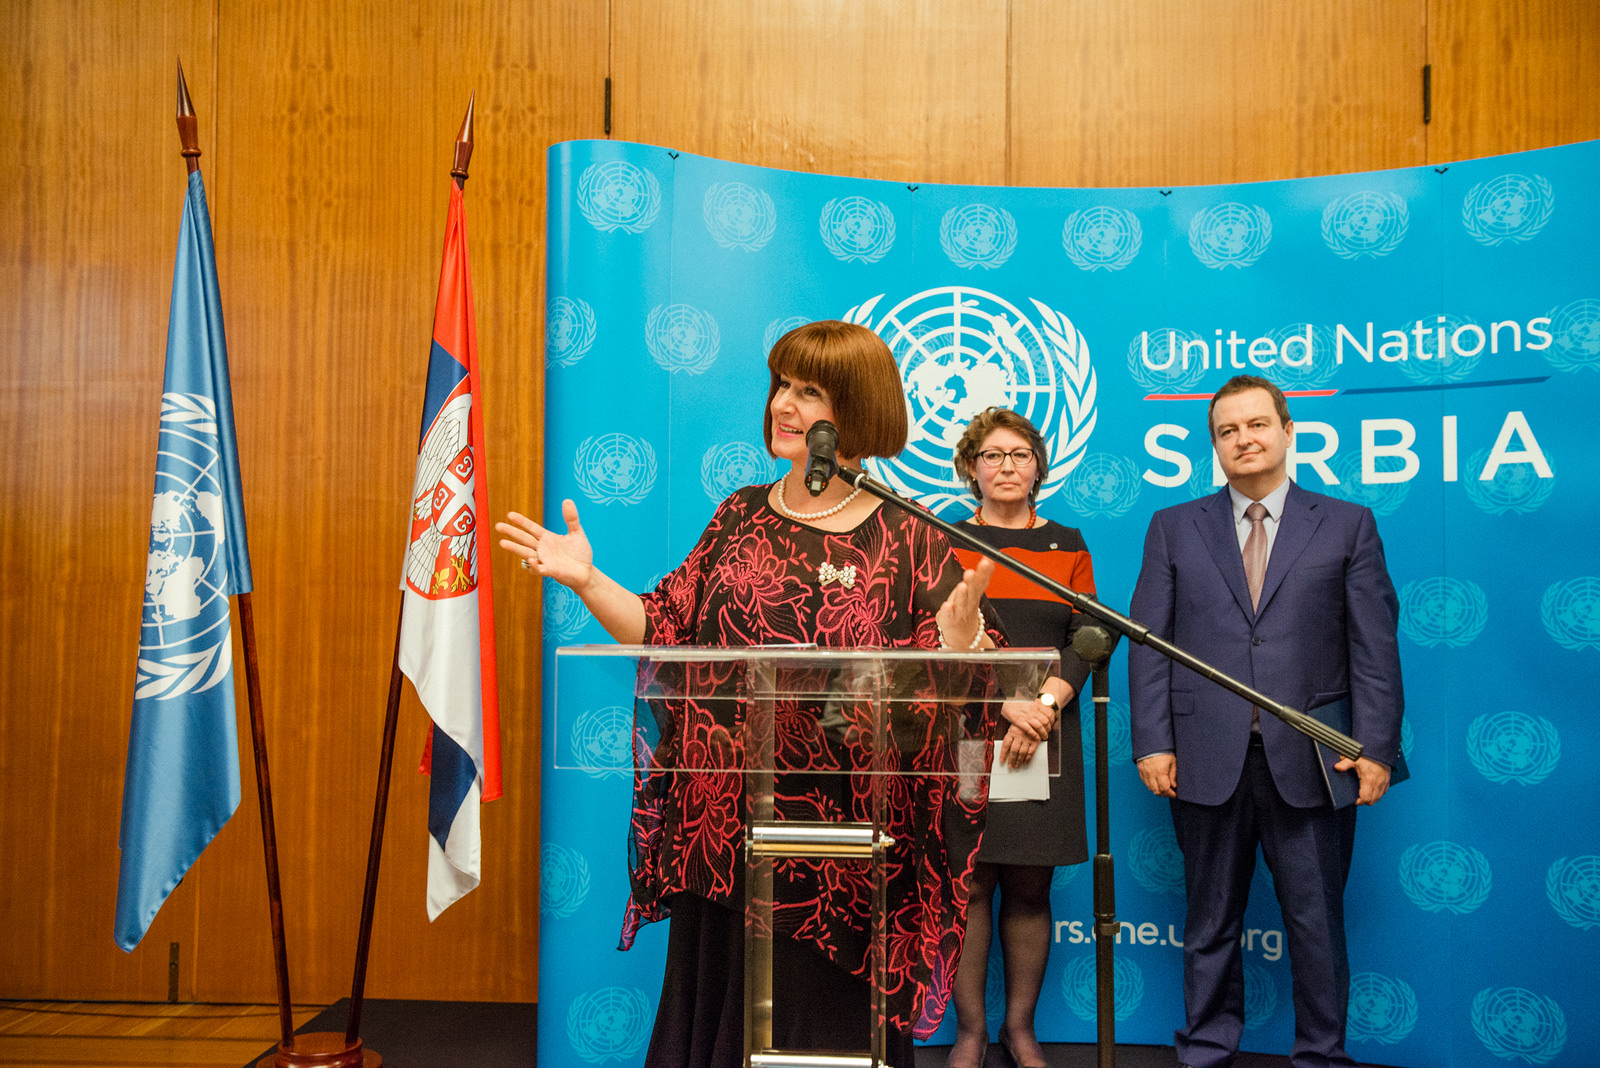 Marking of the 71st Anniversary of the UN - Serbia